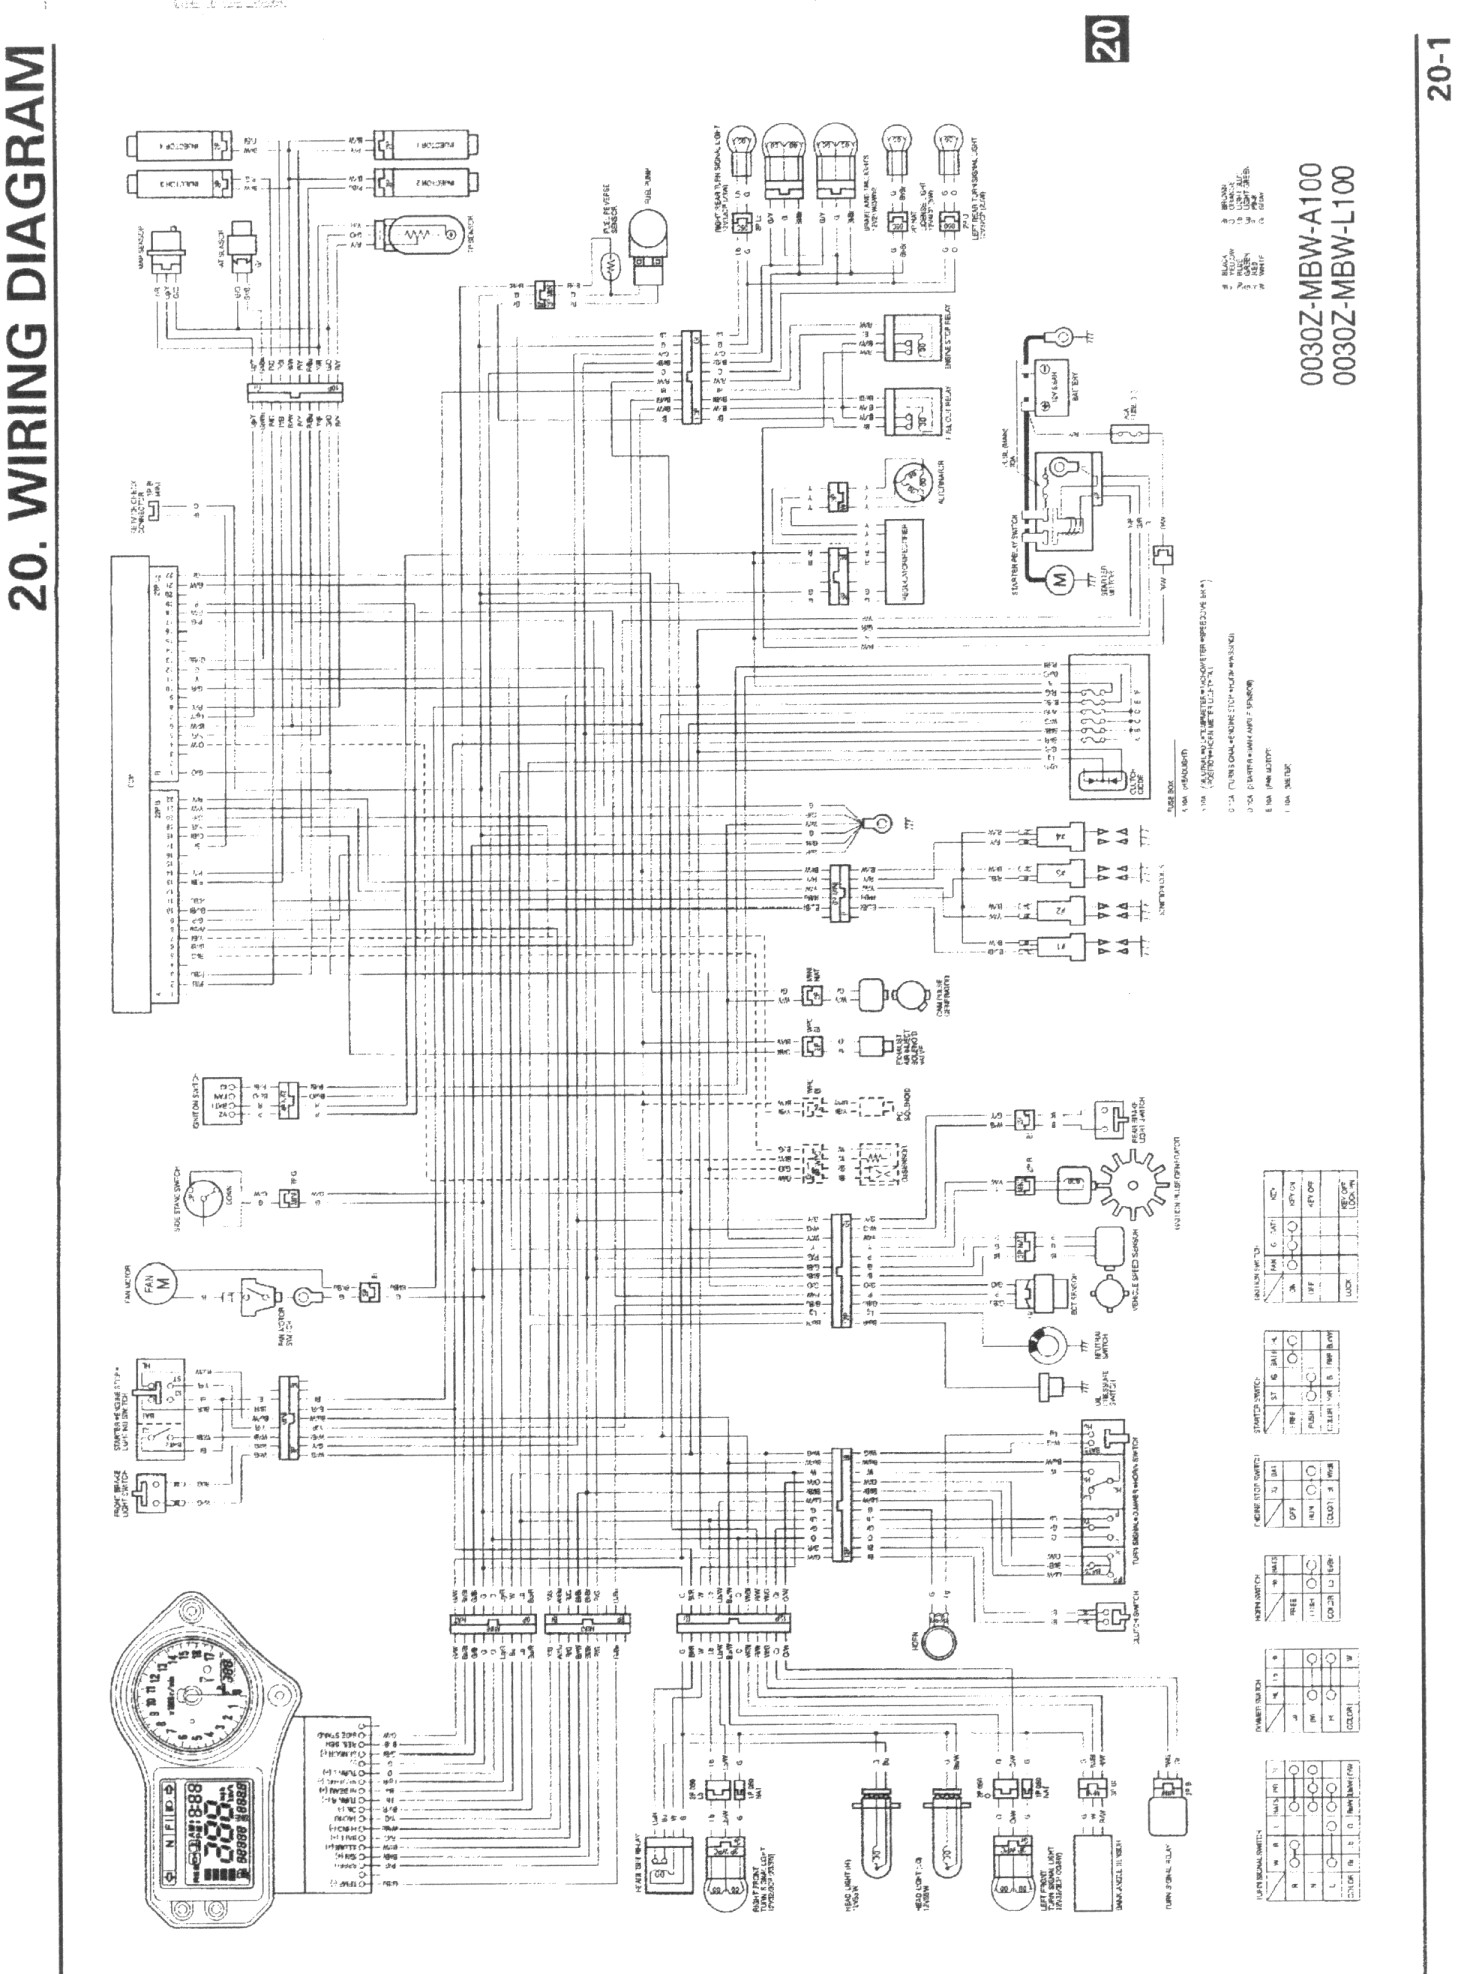 Cbr 600 F4 Wiring Diagram : 25 Wiring Diagram Images